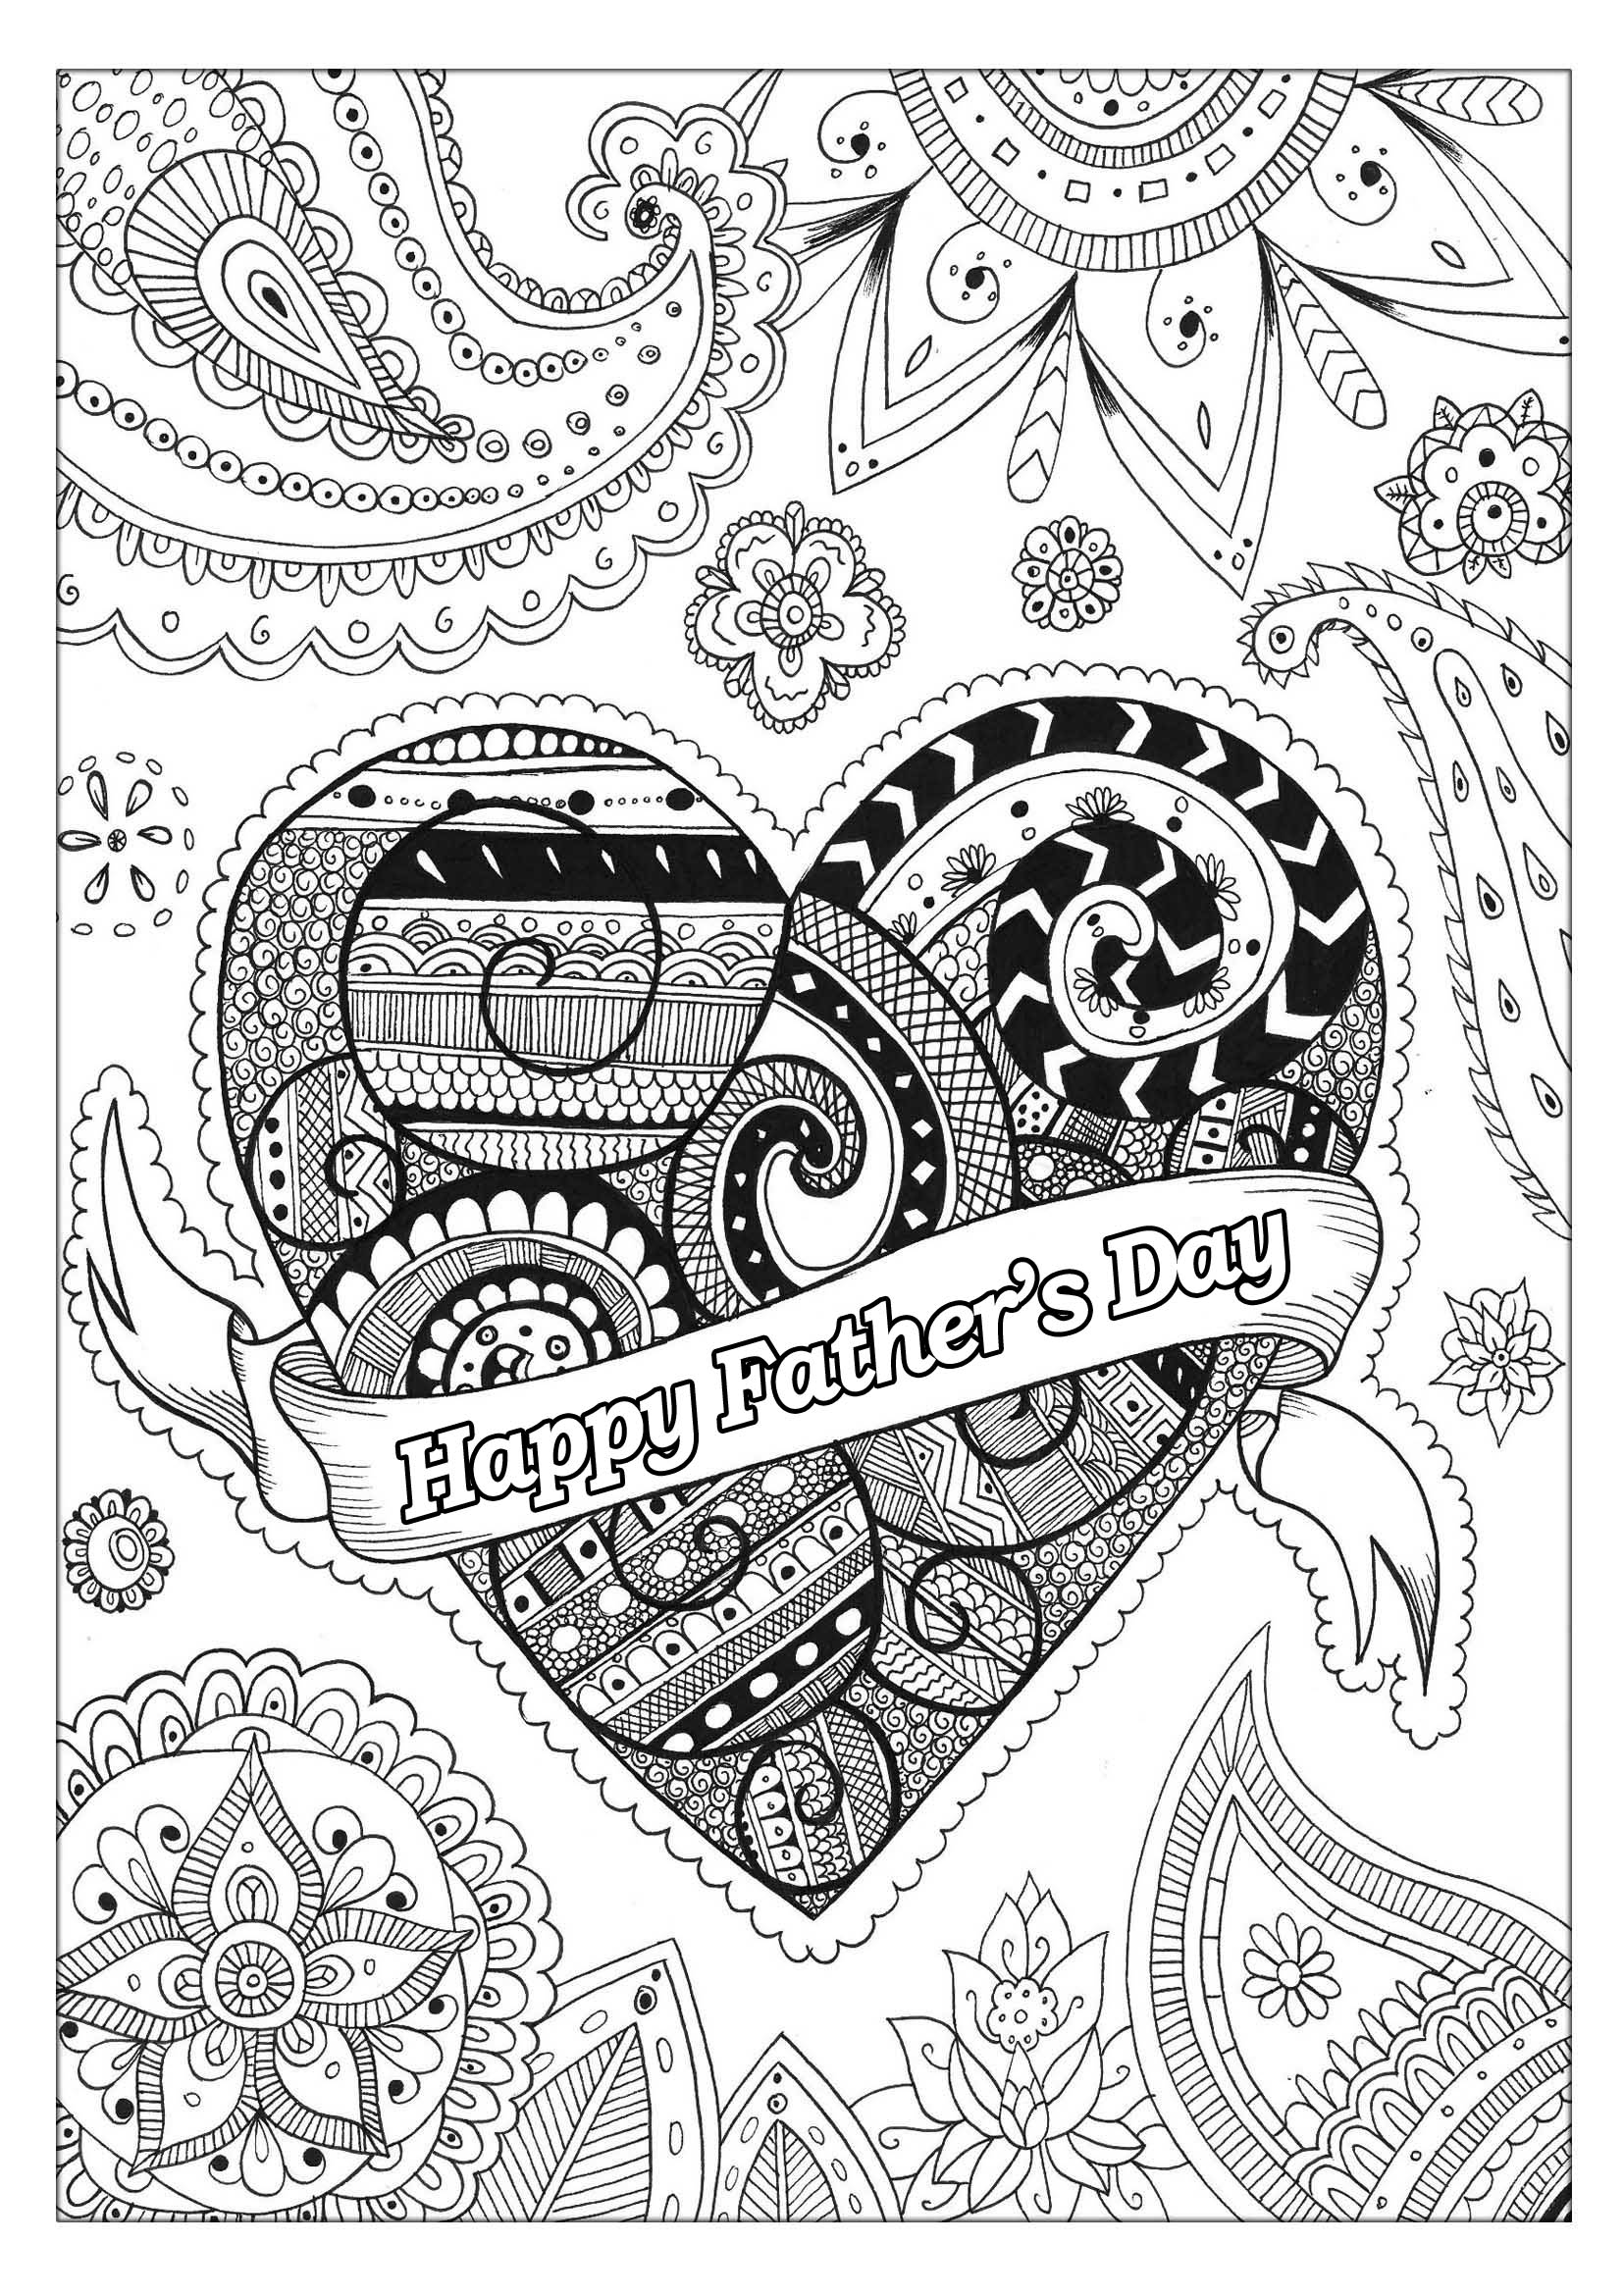 Greetings Coloring Pages for